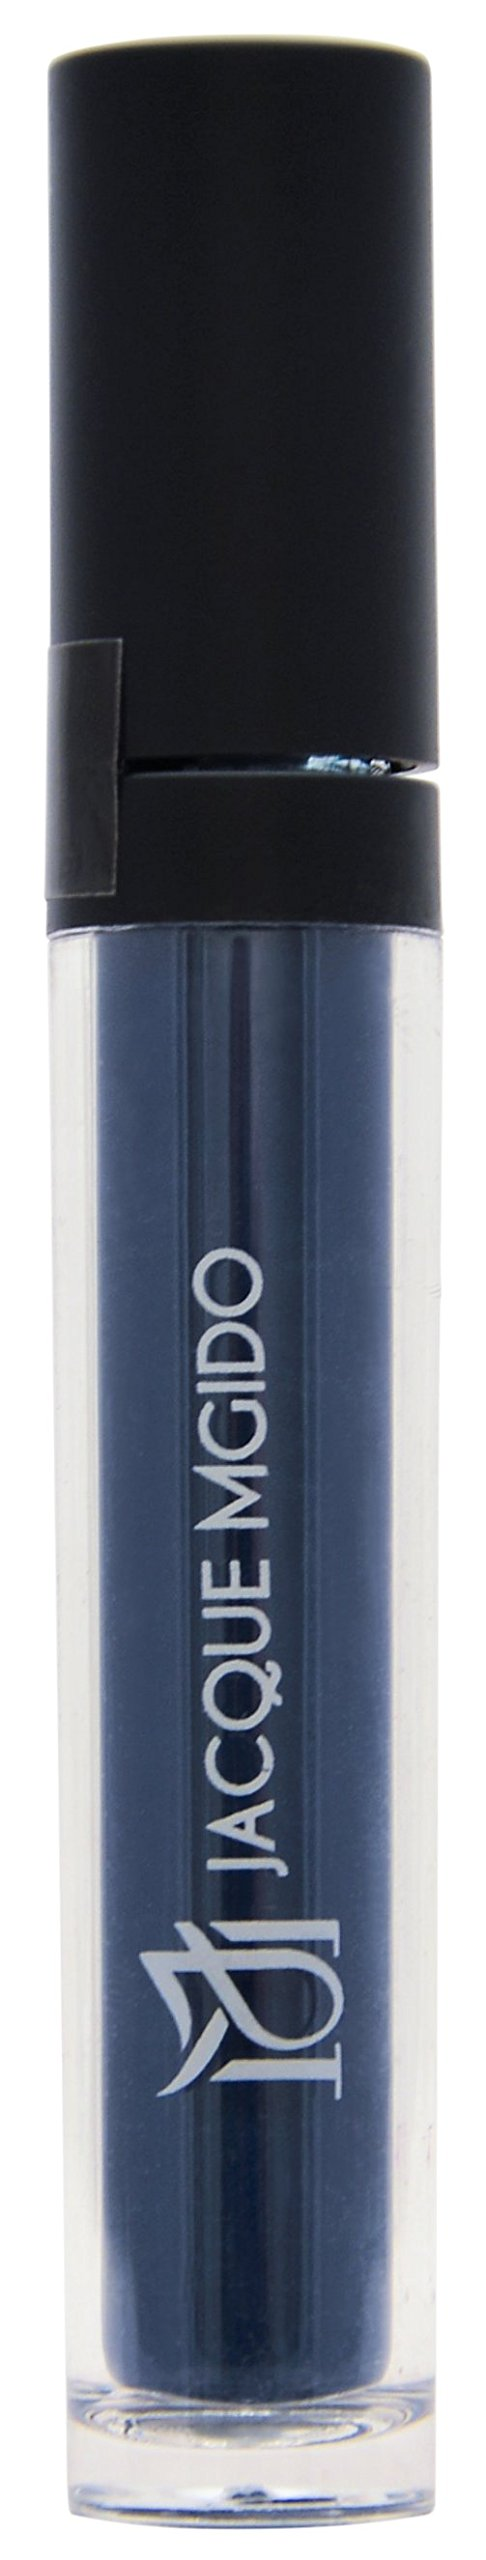 Jacque Mgido Cosmetics - Blue Crack Free Lip Stain, Matte Finish - 0.18 Ounce (Pack of 1)